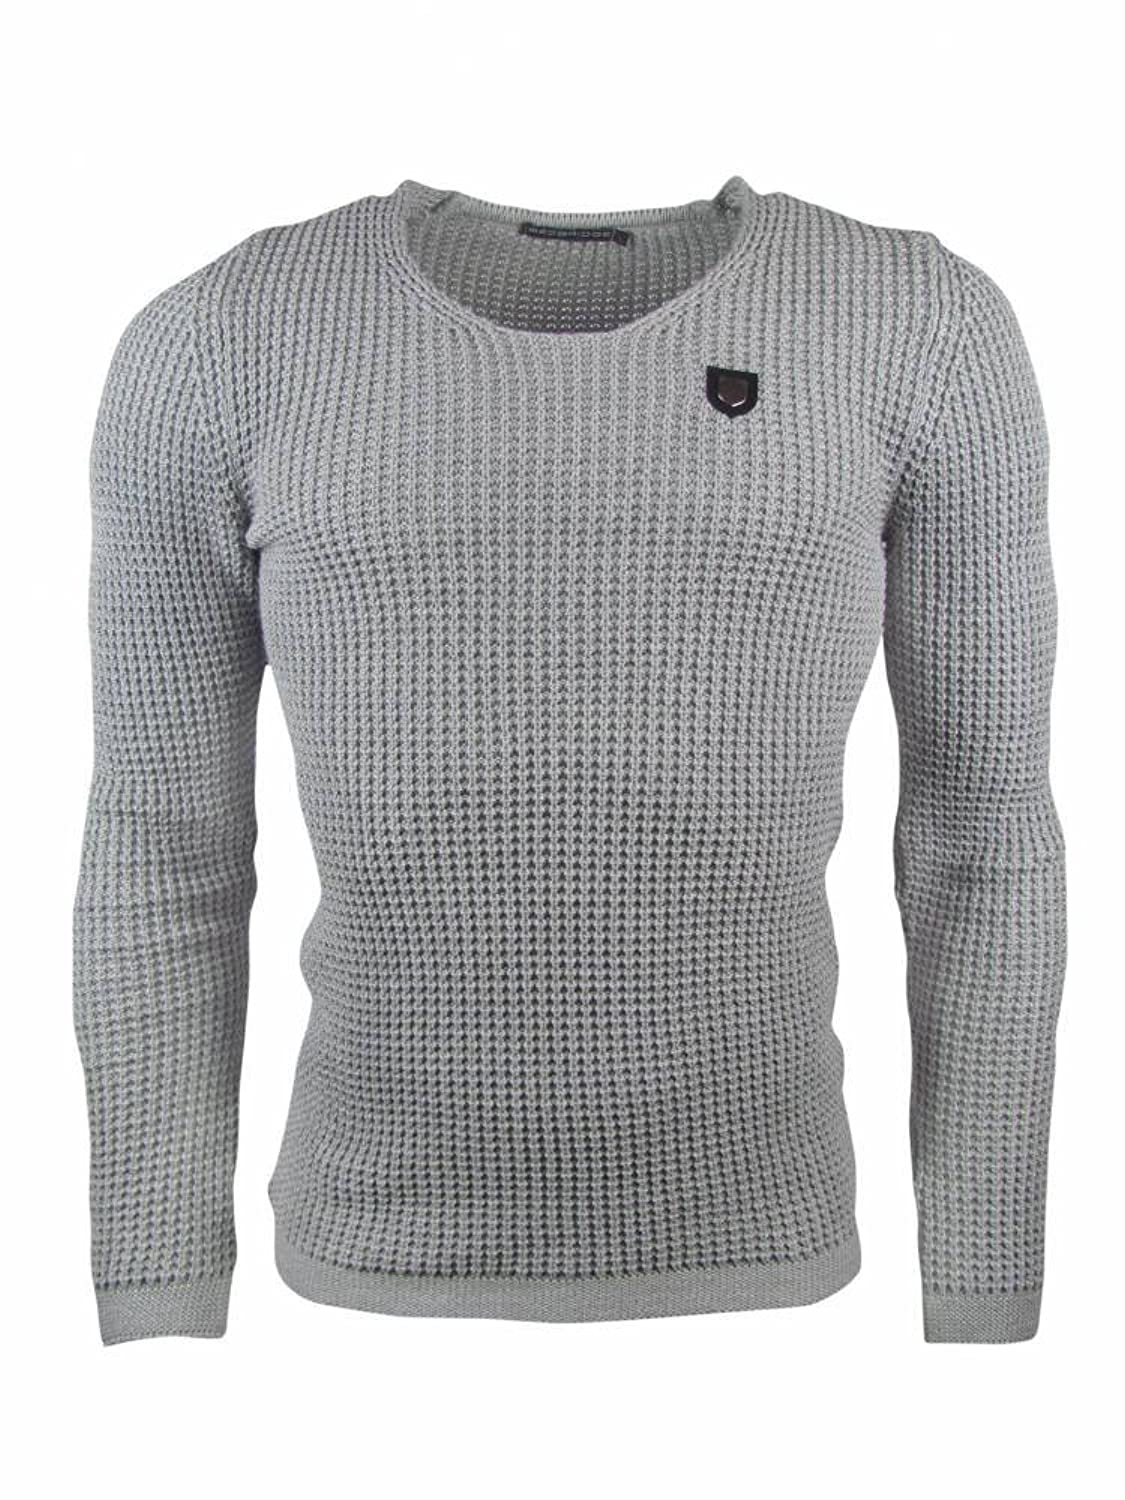 Redbridge?-?Knitted Jumper?-?Grey, Size M